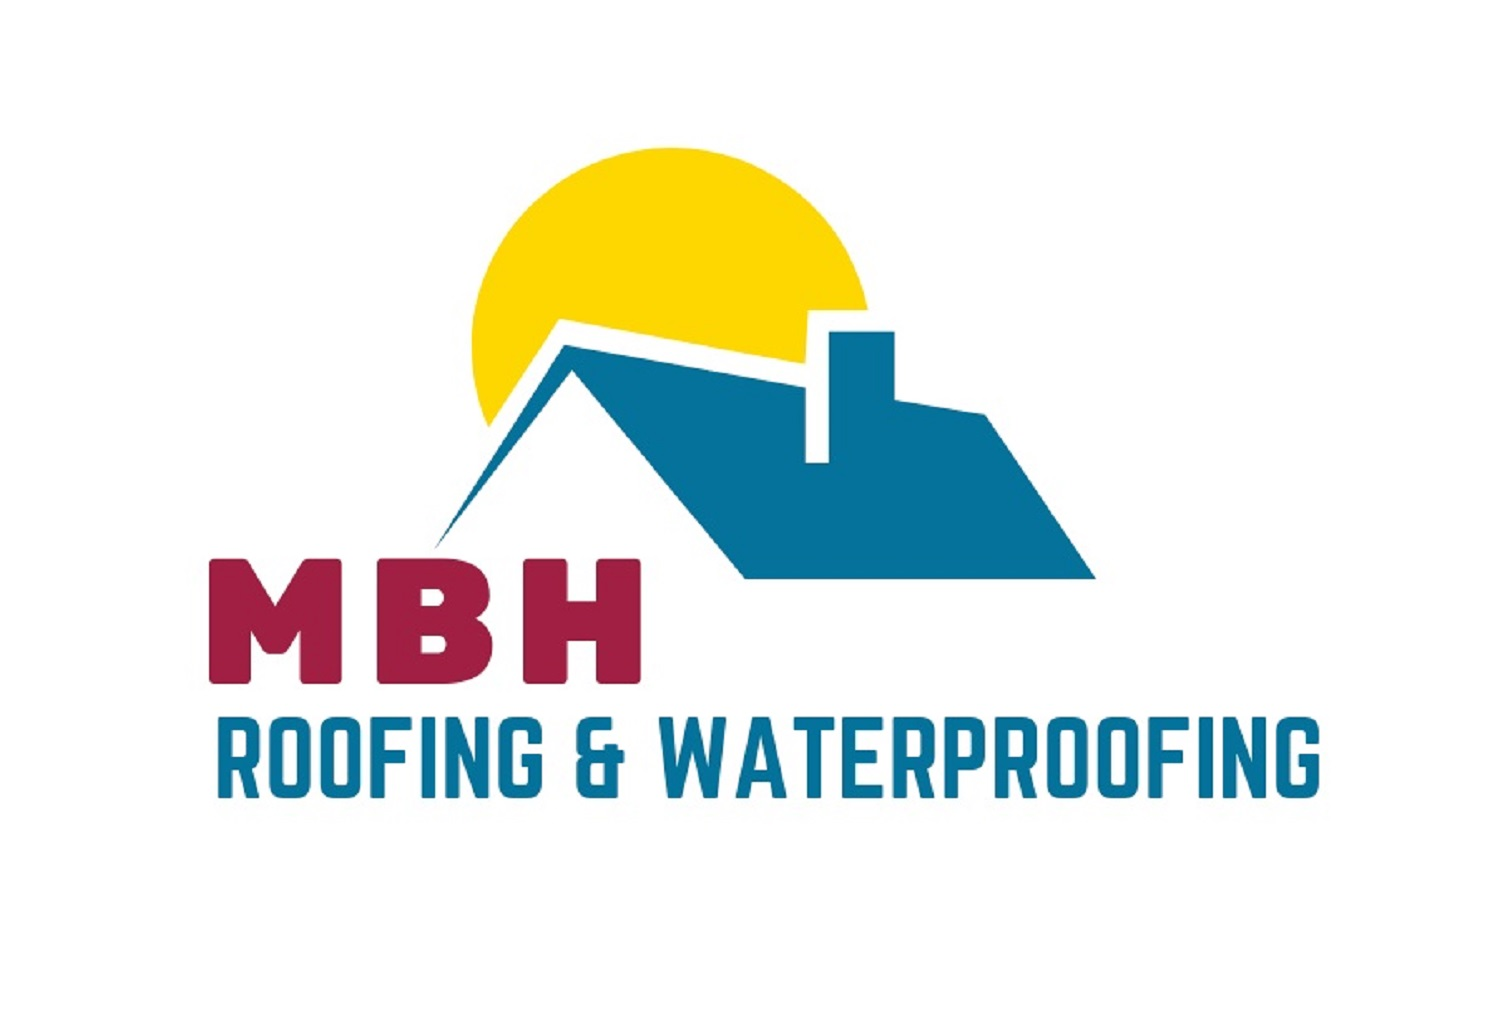 MBH Roofing & Waterproofing